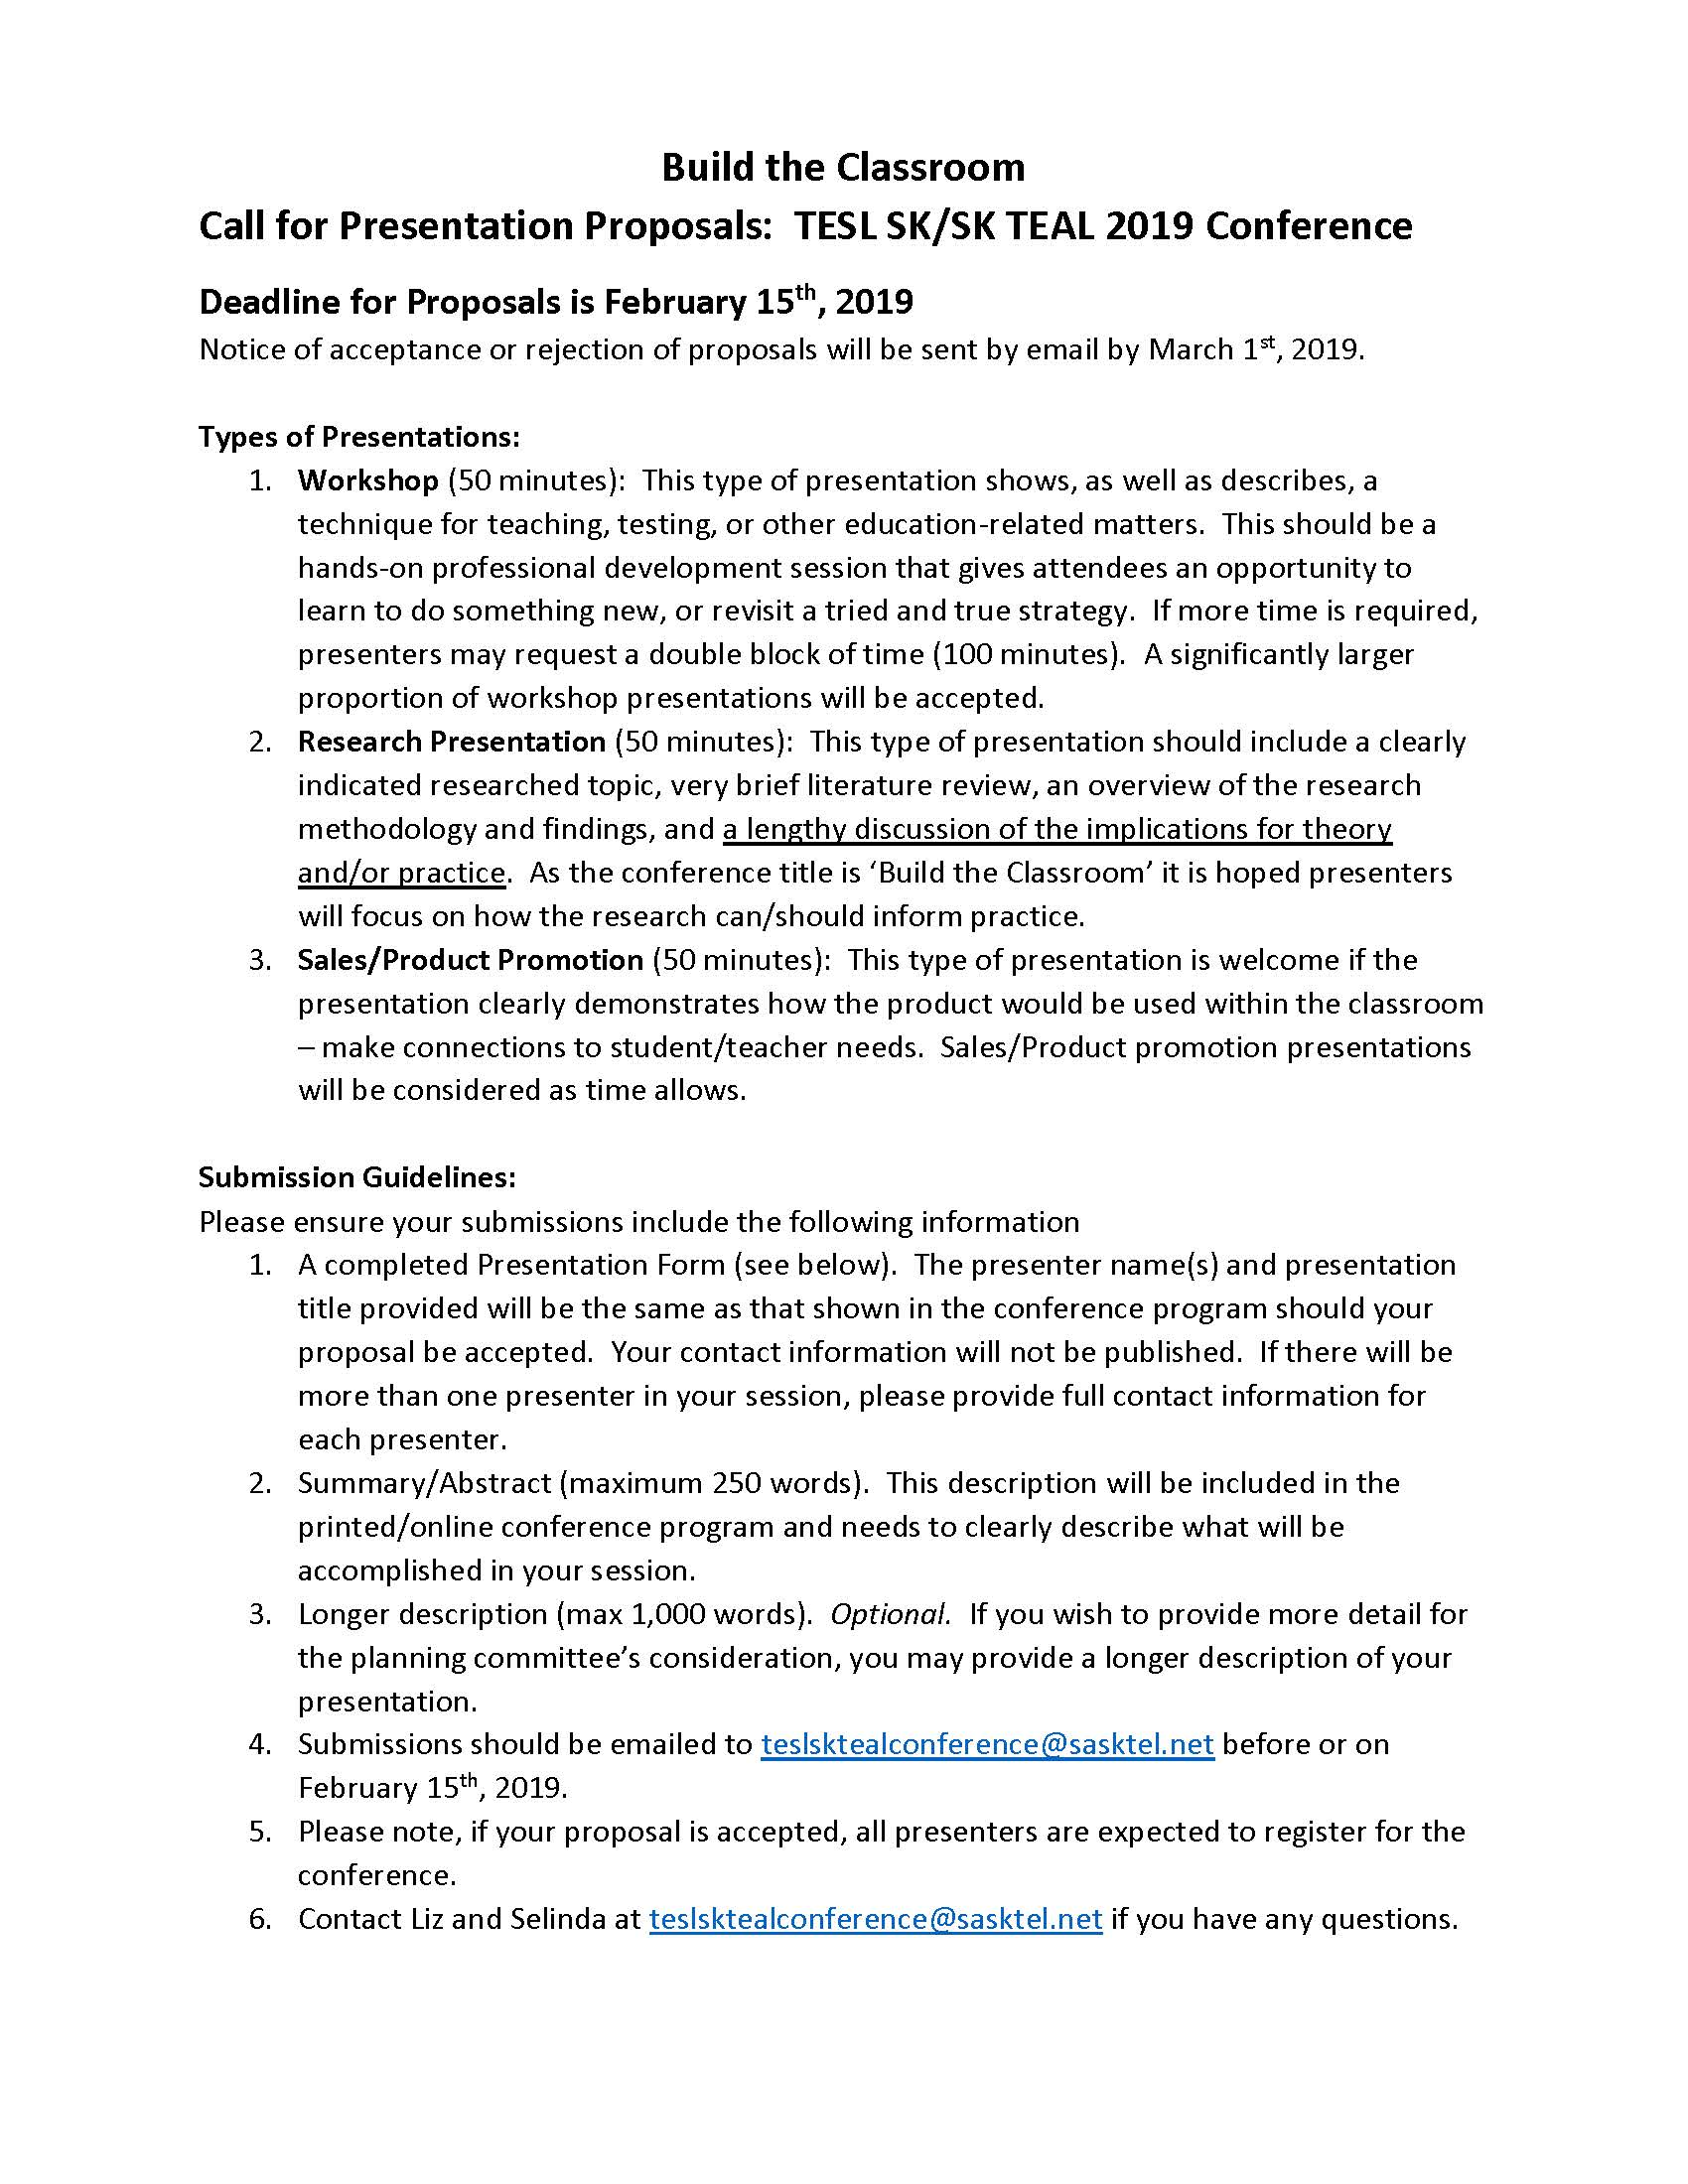 Call for Proposals form_Page_1